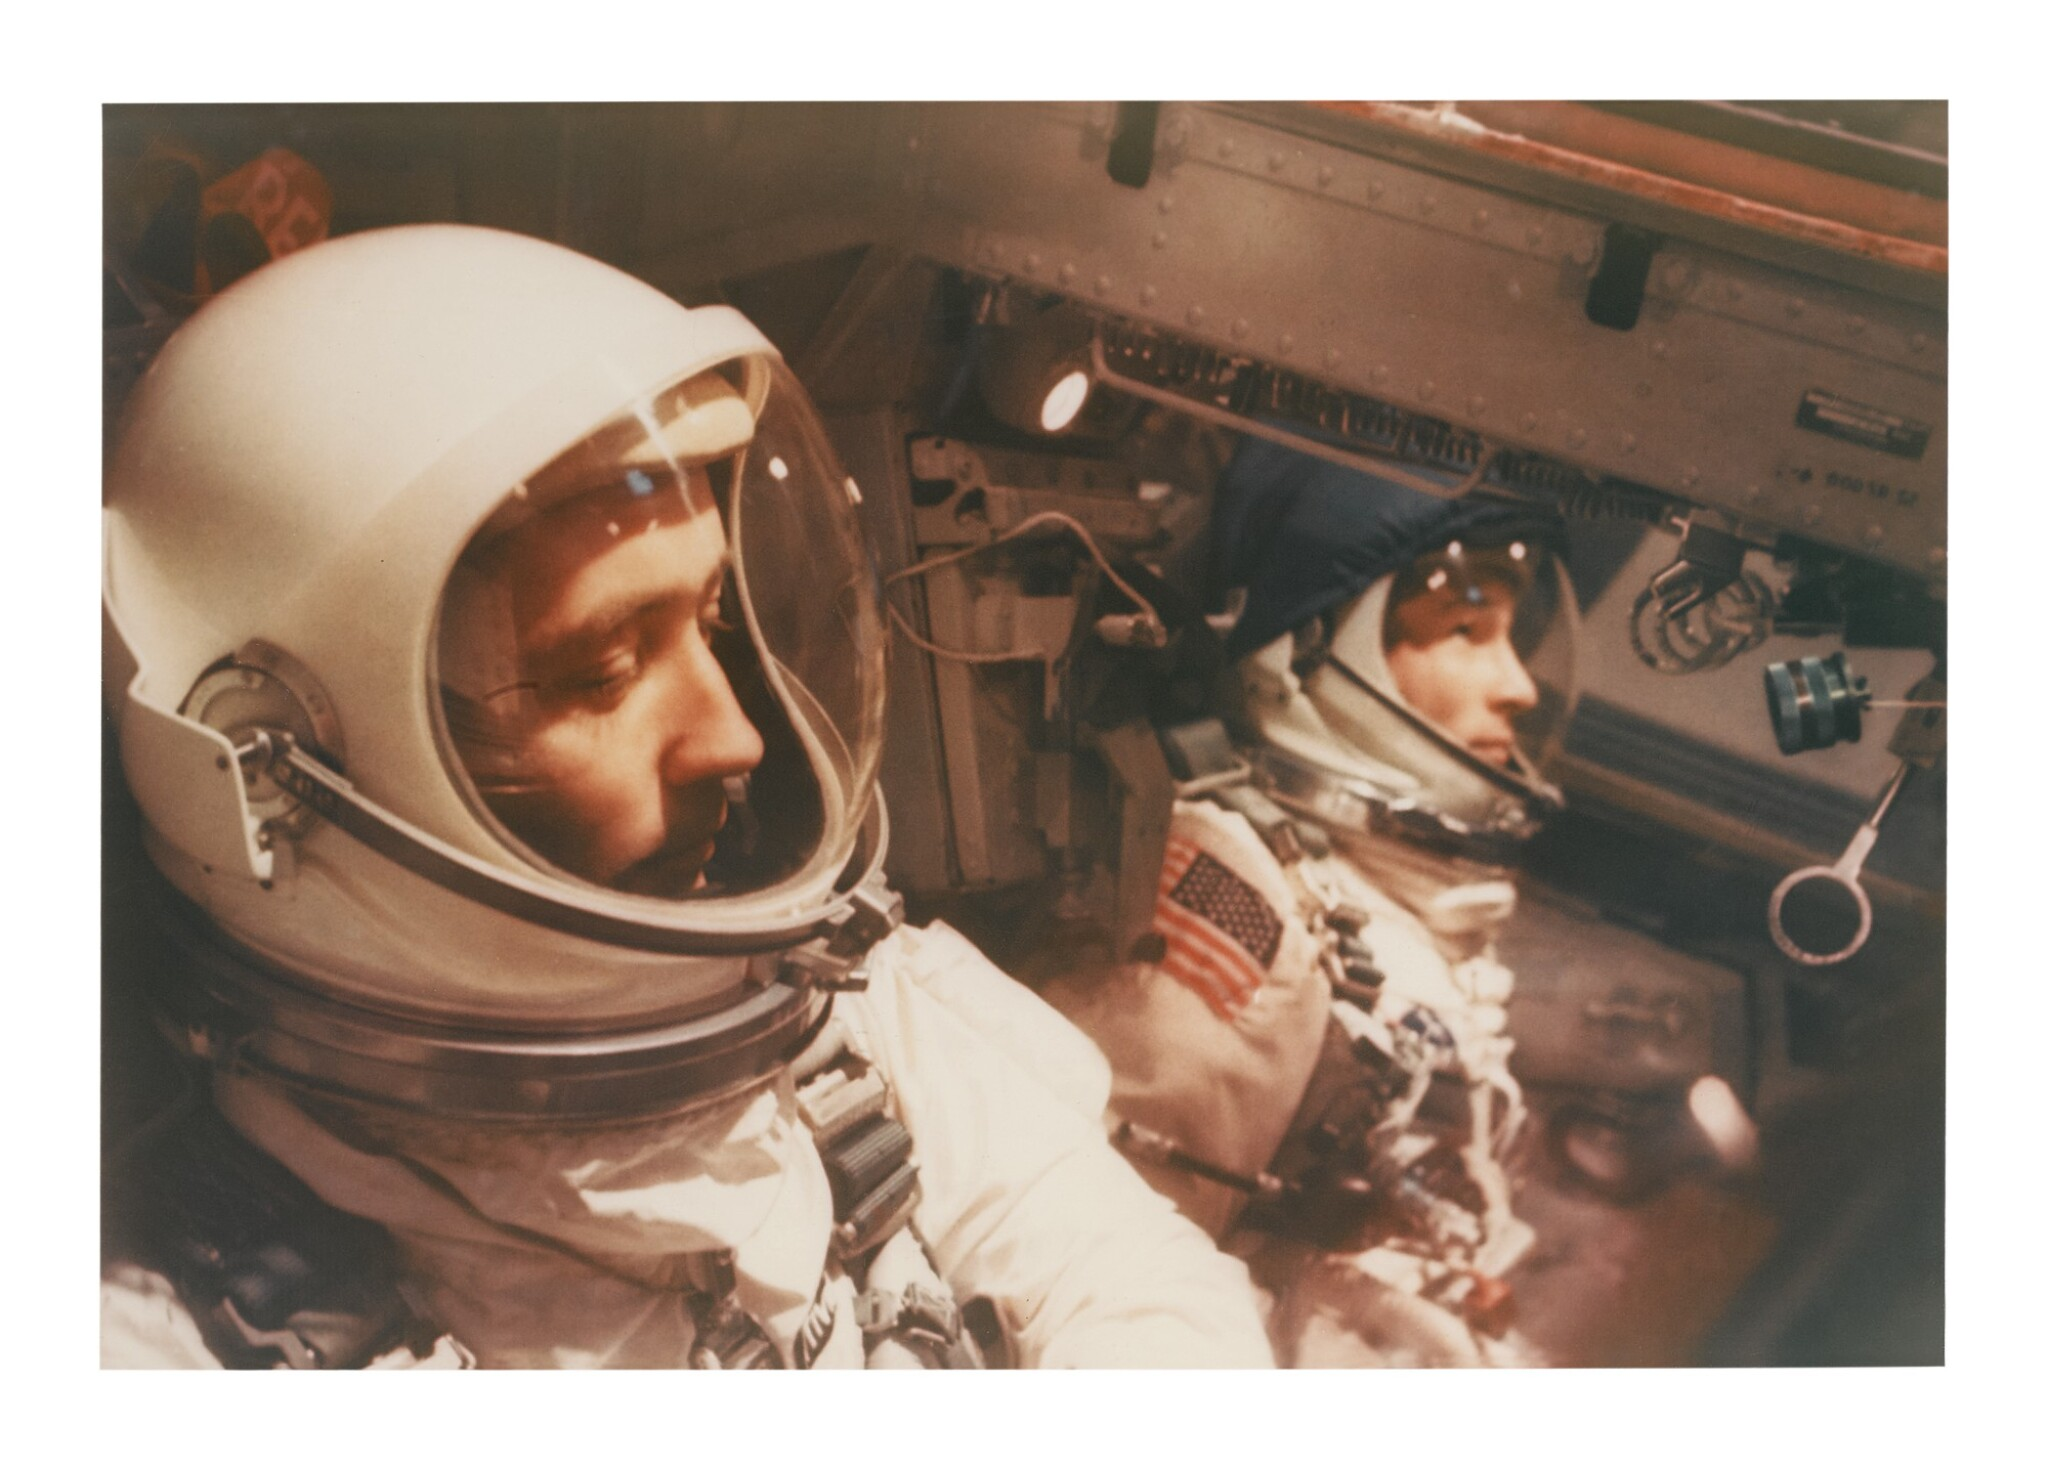 """[GEMINI 3] VINTAGE CHROMOGENIC PRINT OF VIRGIL """"GUS"""" GRISSOM AND JOHN YOUNG IN THE SPACE CAPSULE, CA MARCH 1965."""